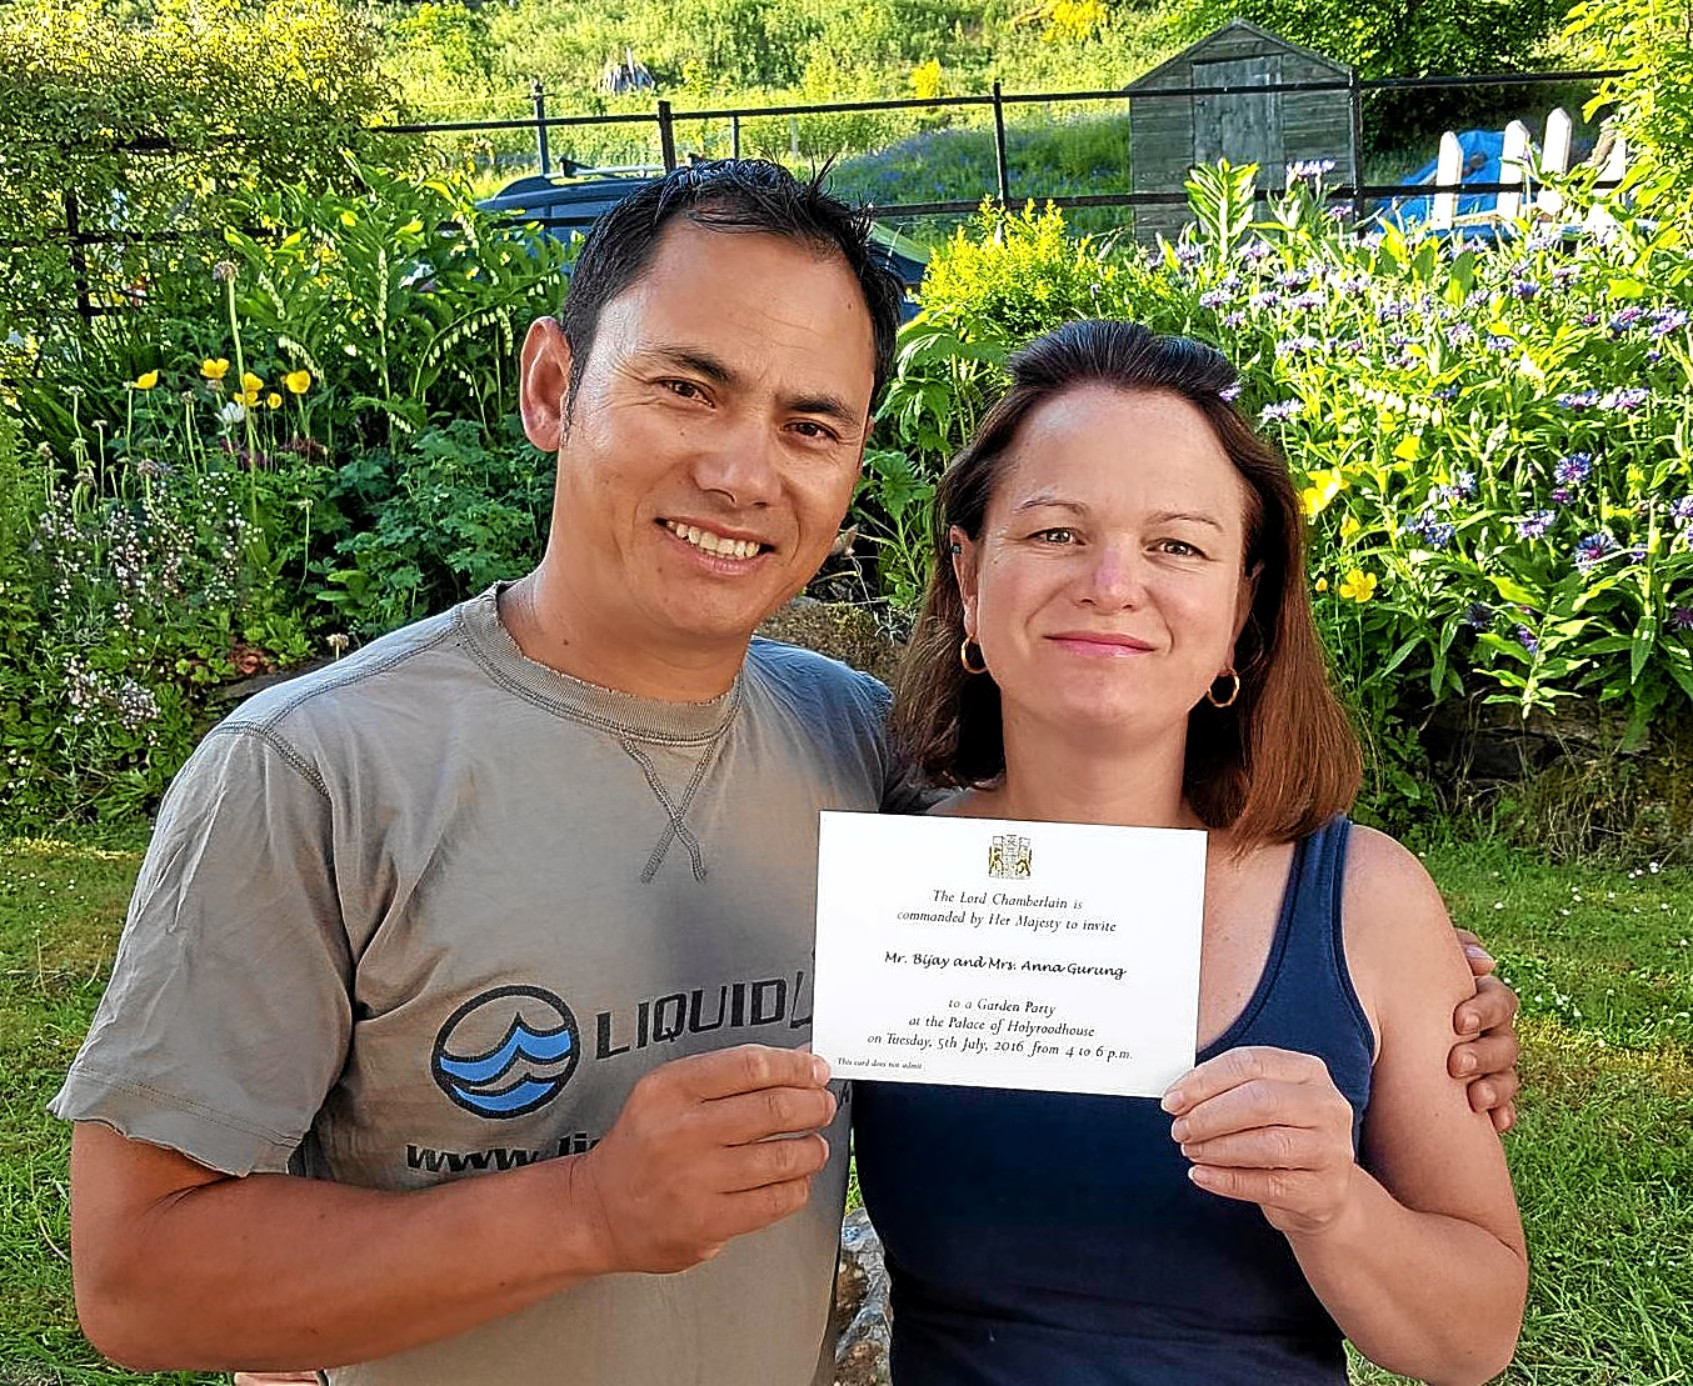 Anna and Sanu Gurung have received an official invitation to the Queens Royal Garden Party in Edinburgh next month.